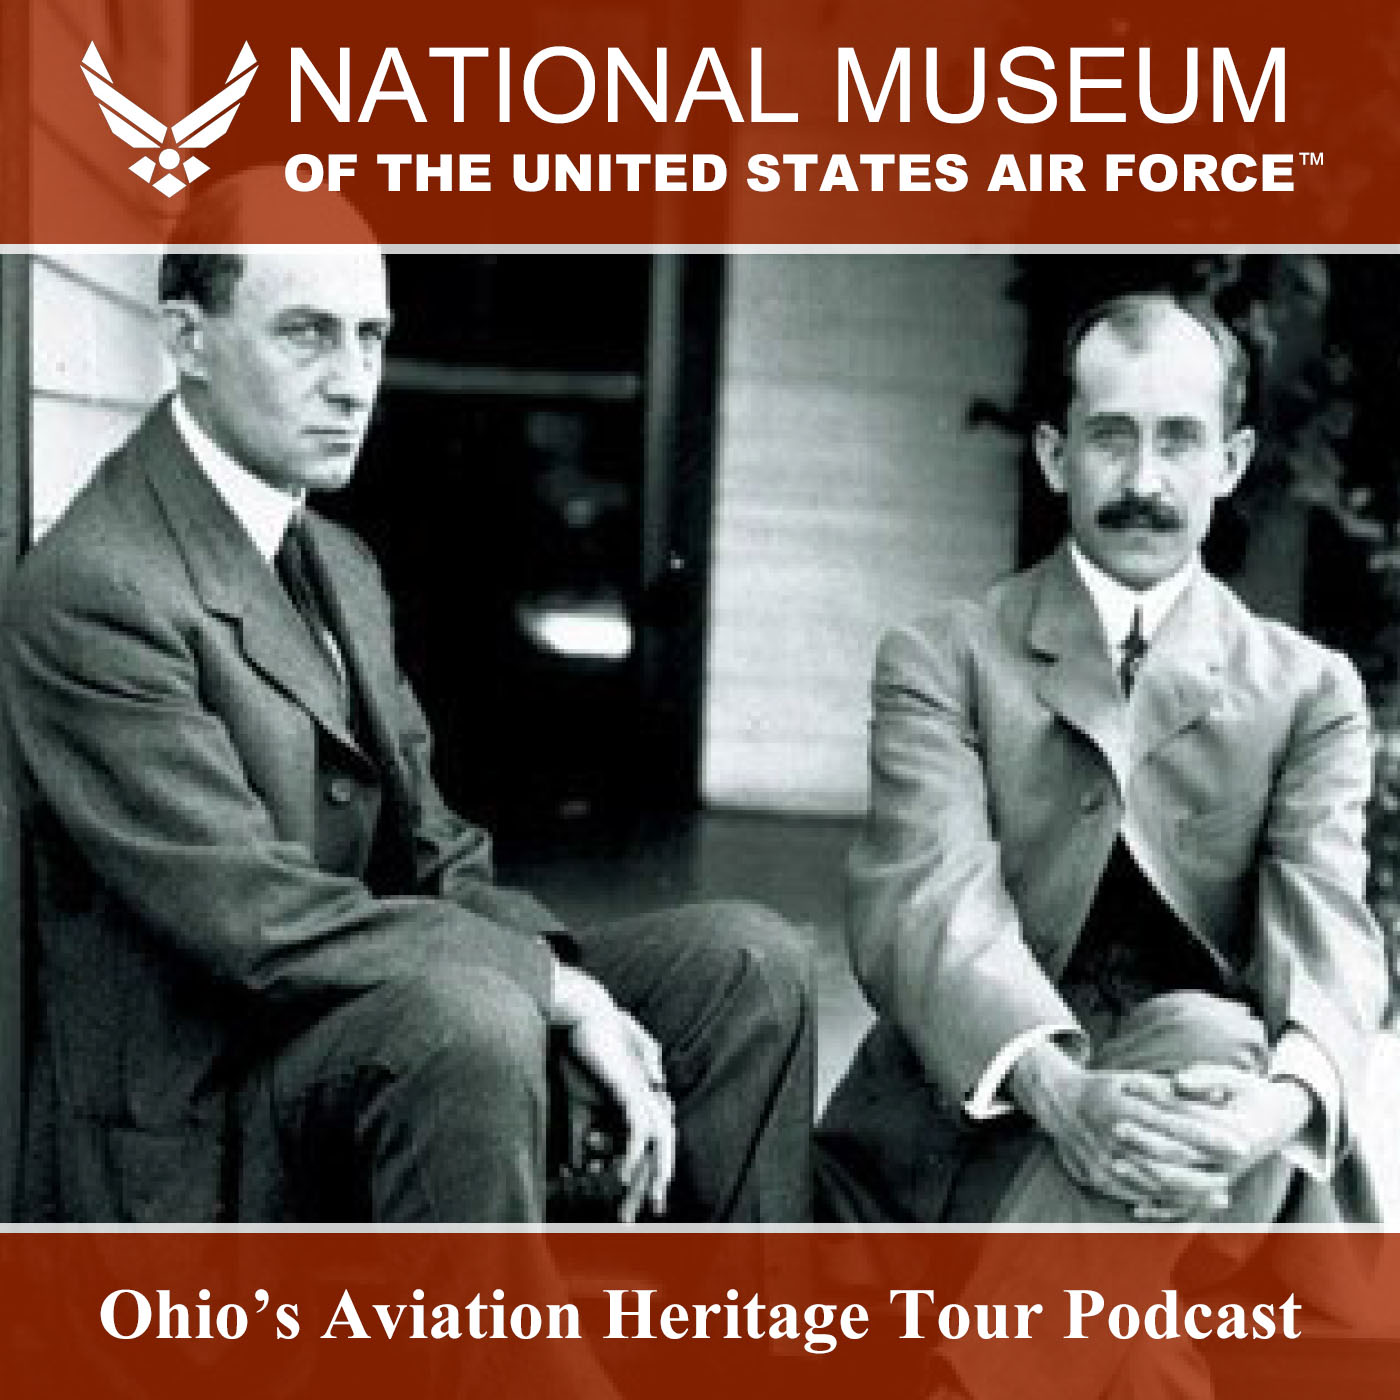 Subscribe to Ohio's Aviation Heritage Tour Podcast